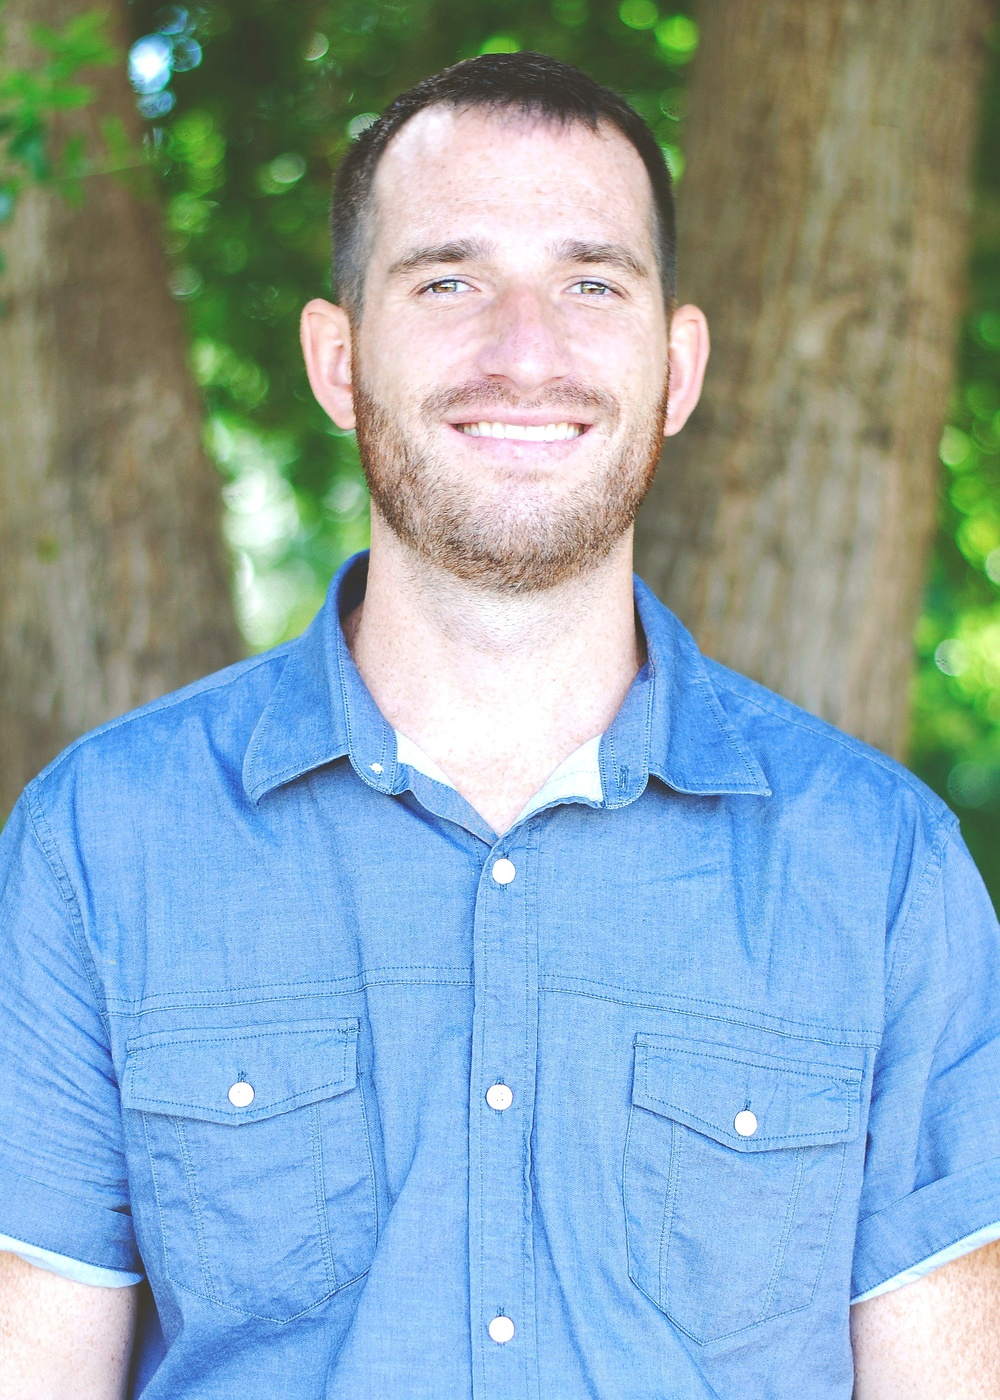 Josh has been serving in student ministry for over 10 years. He is currently the pastor to students at Church @ the Springs in Ocala, Florida. [read more]